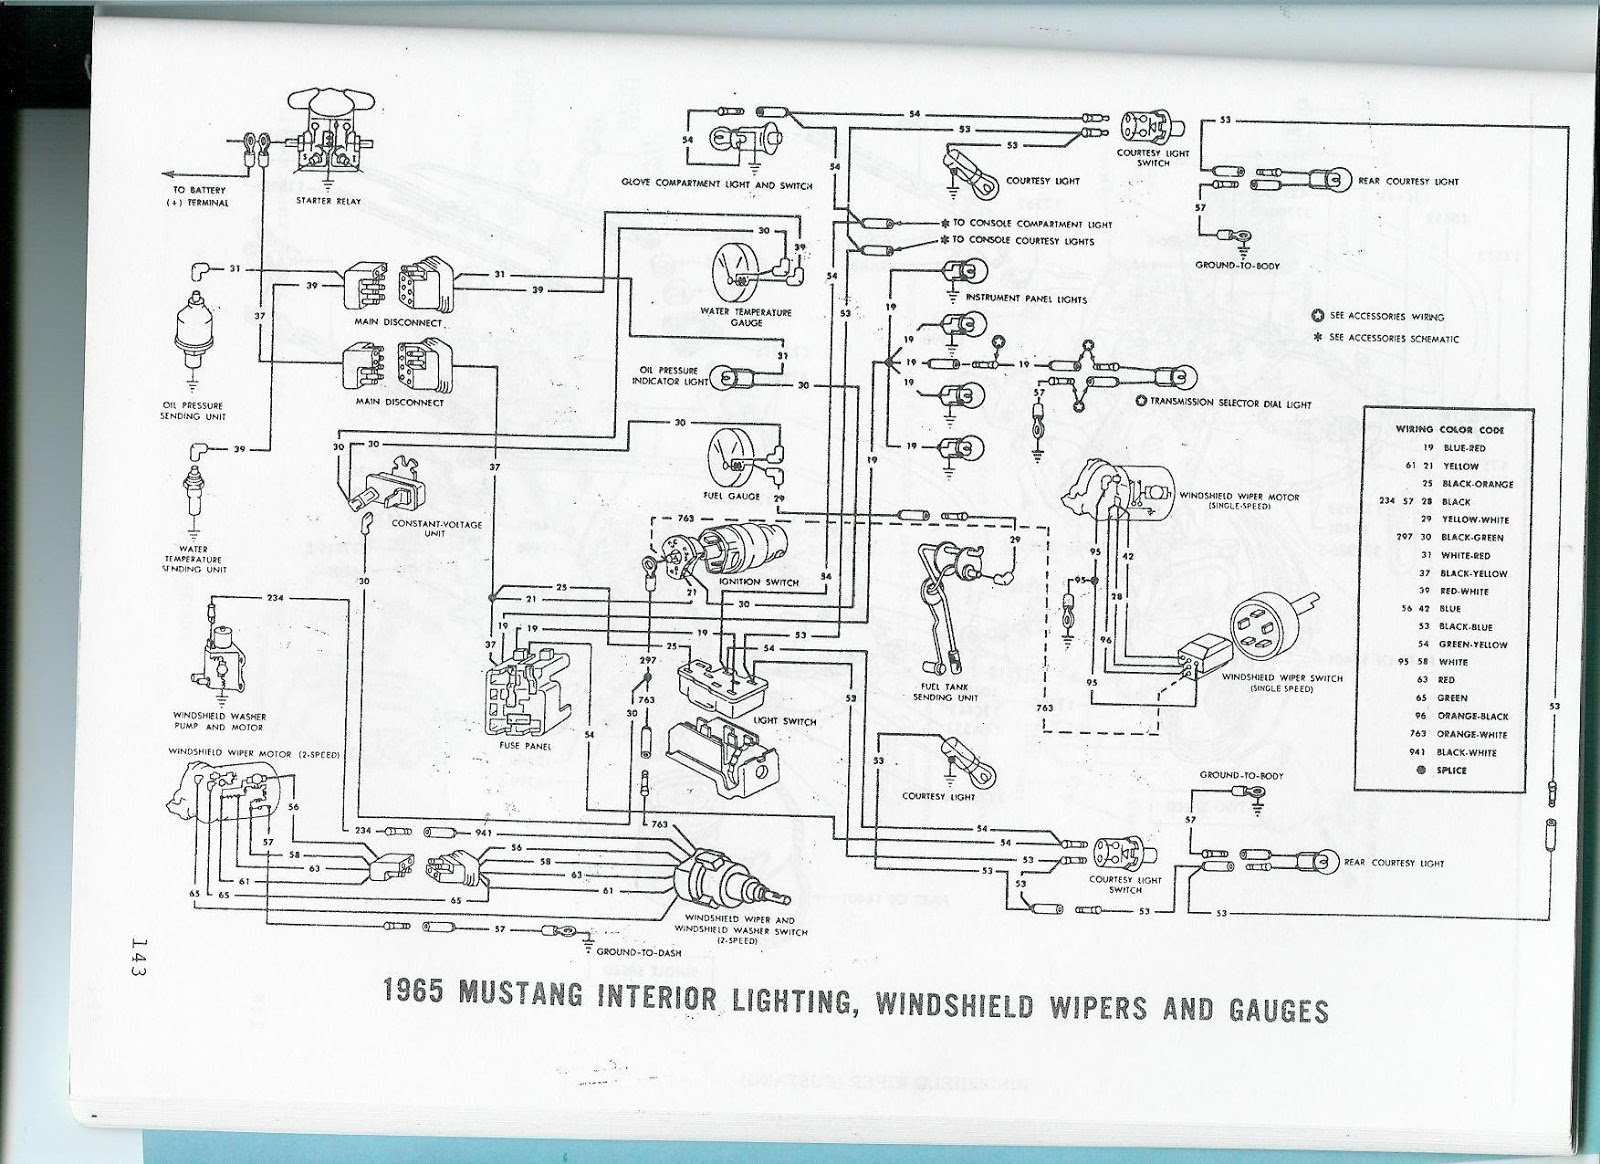 1966 Dodge Fuse Box Wiring Library Nova Wiper Diagram Schematic 1965 Chevelle Opinions About U2022 Toyota 1964